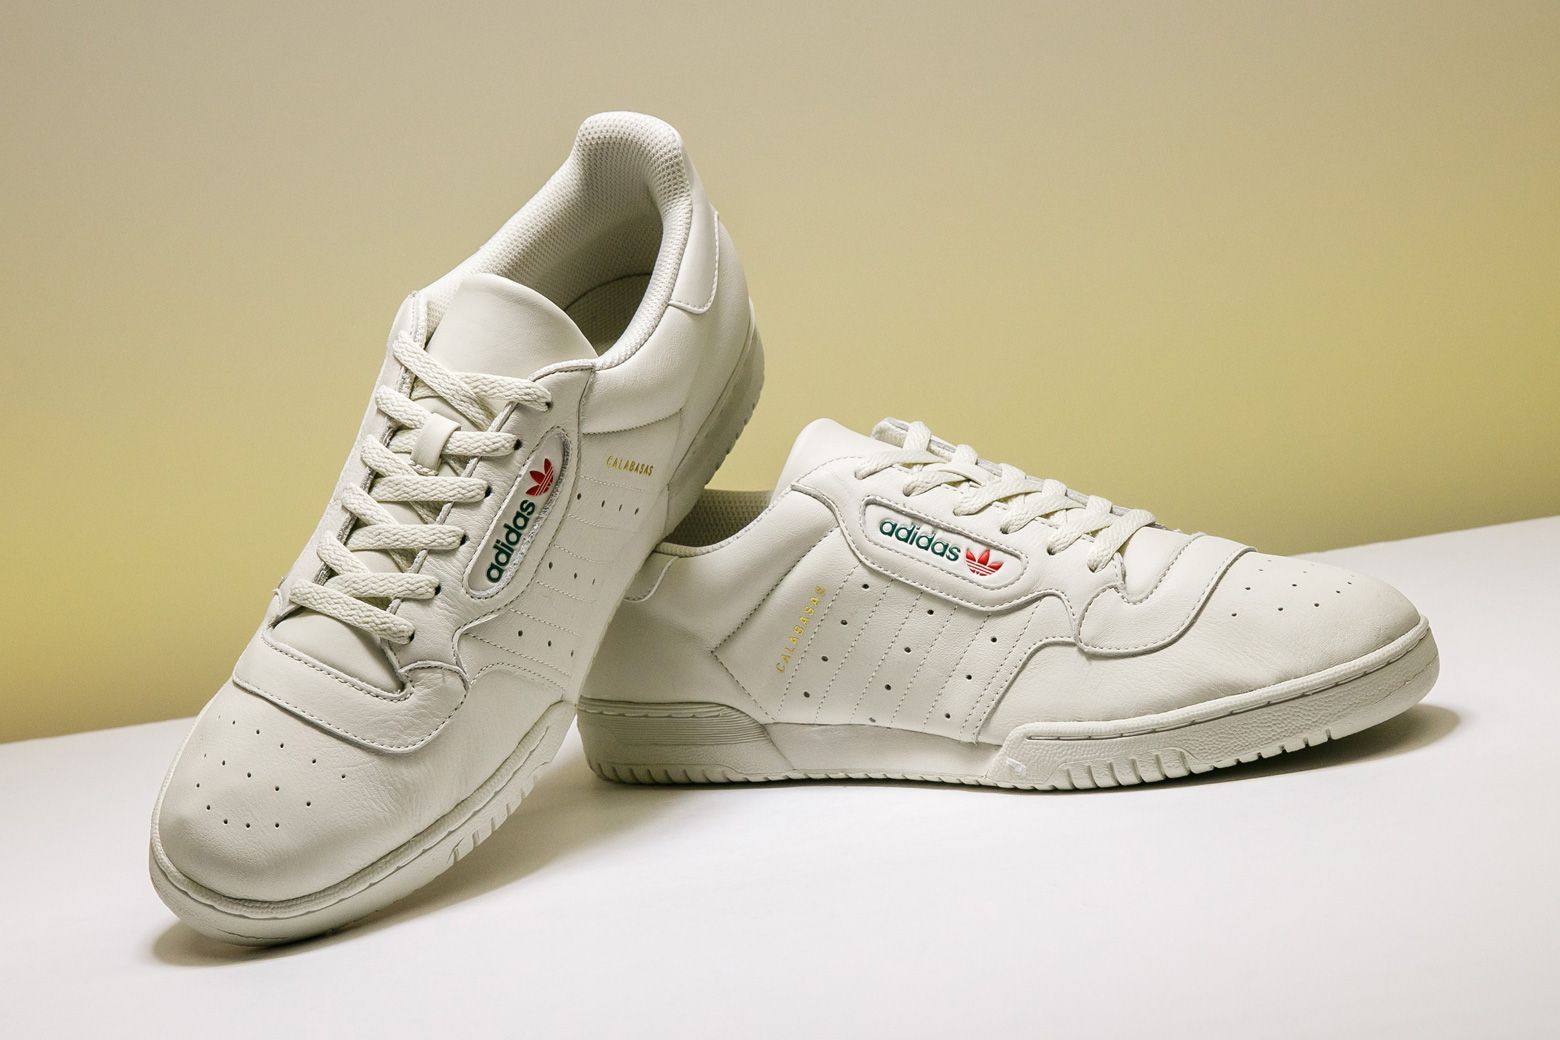 Simple and clean, the adidas Yeezy Calabasas Powerphase does away with the  bells and whistles